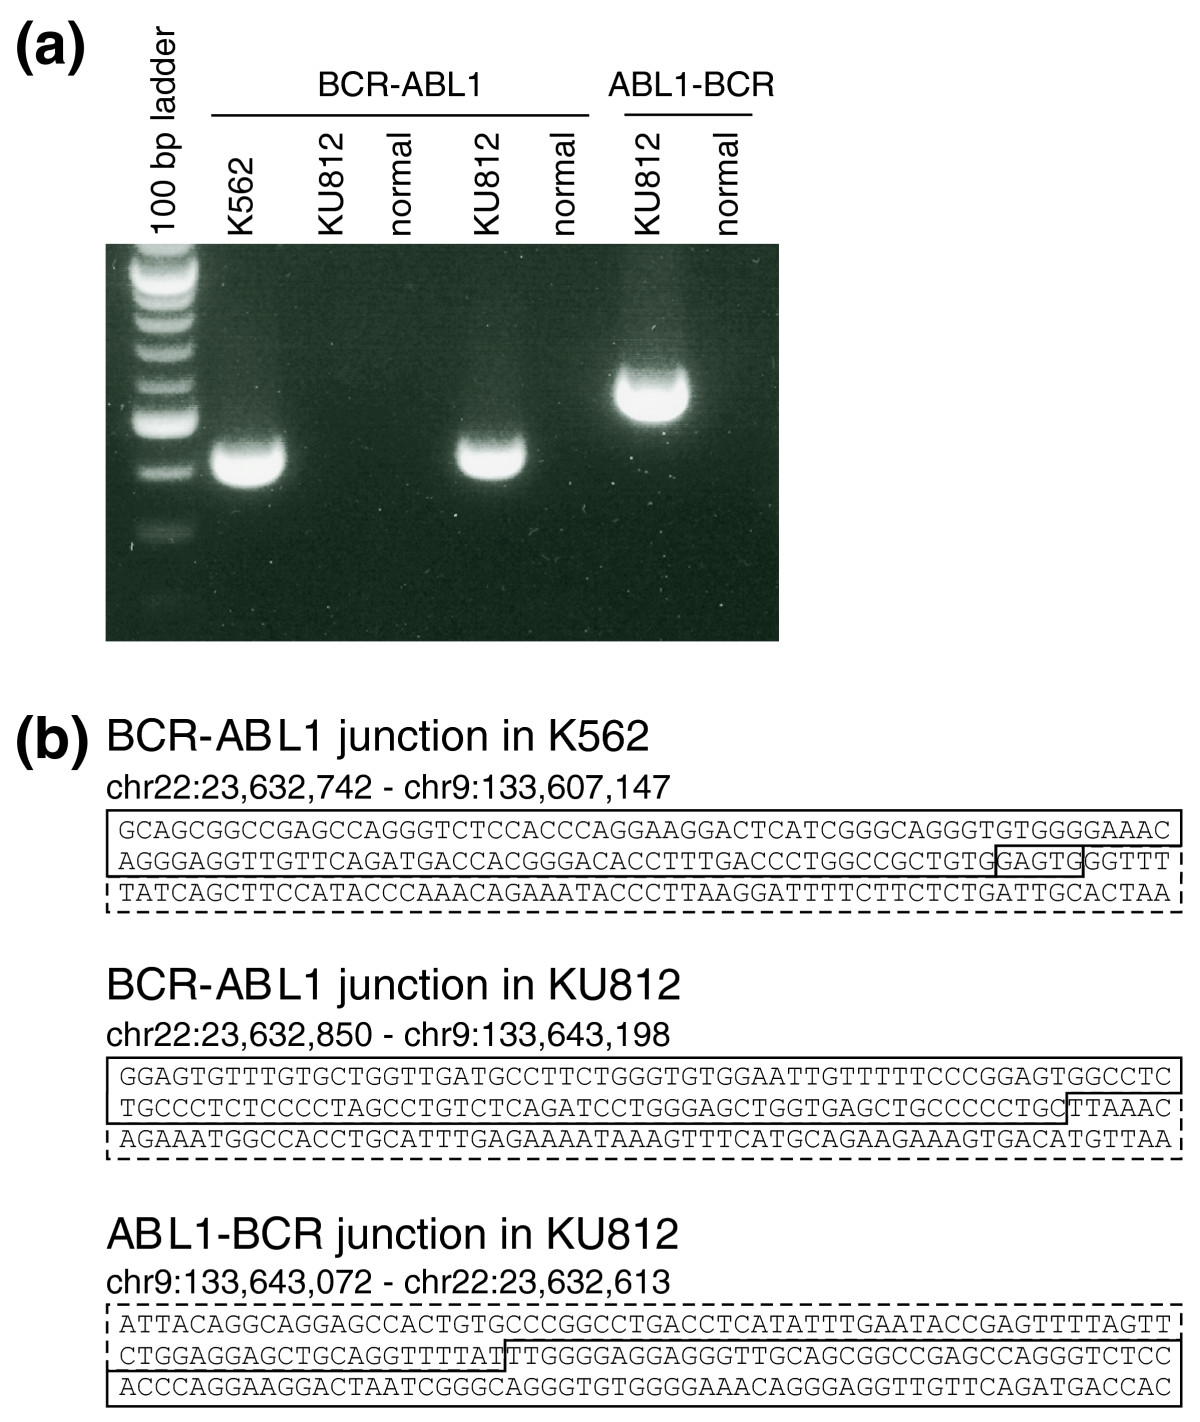 http://static-content.springer.com/image/art%3A10.1186%2Fgm191/MediaObjects/13073_2010_Article_191_Fig3_HTML.jpg